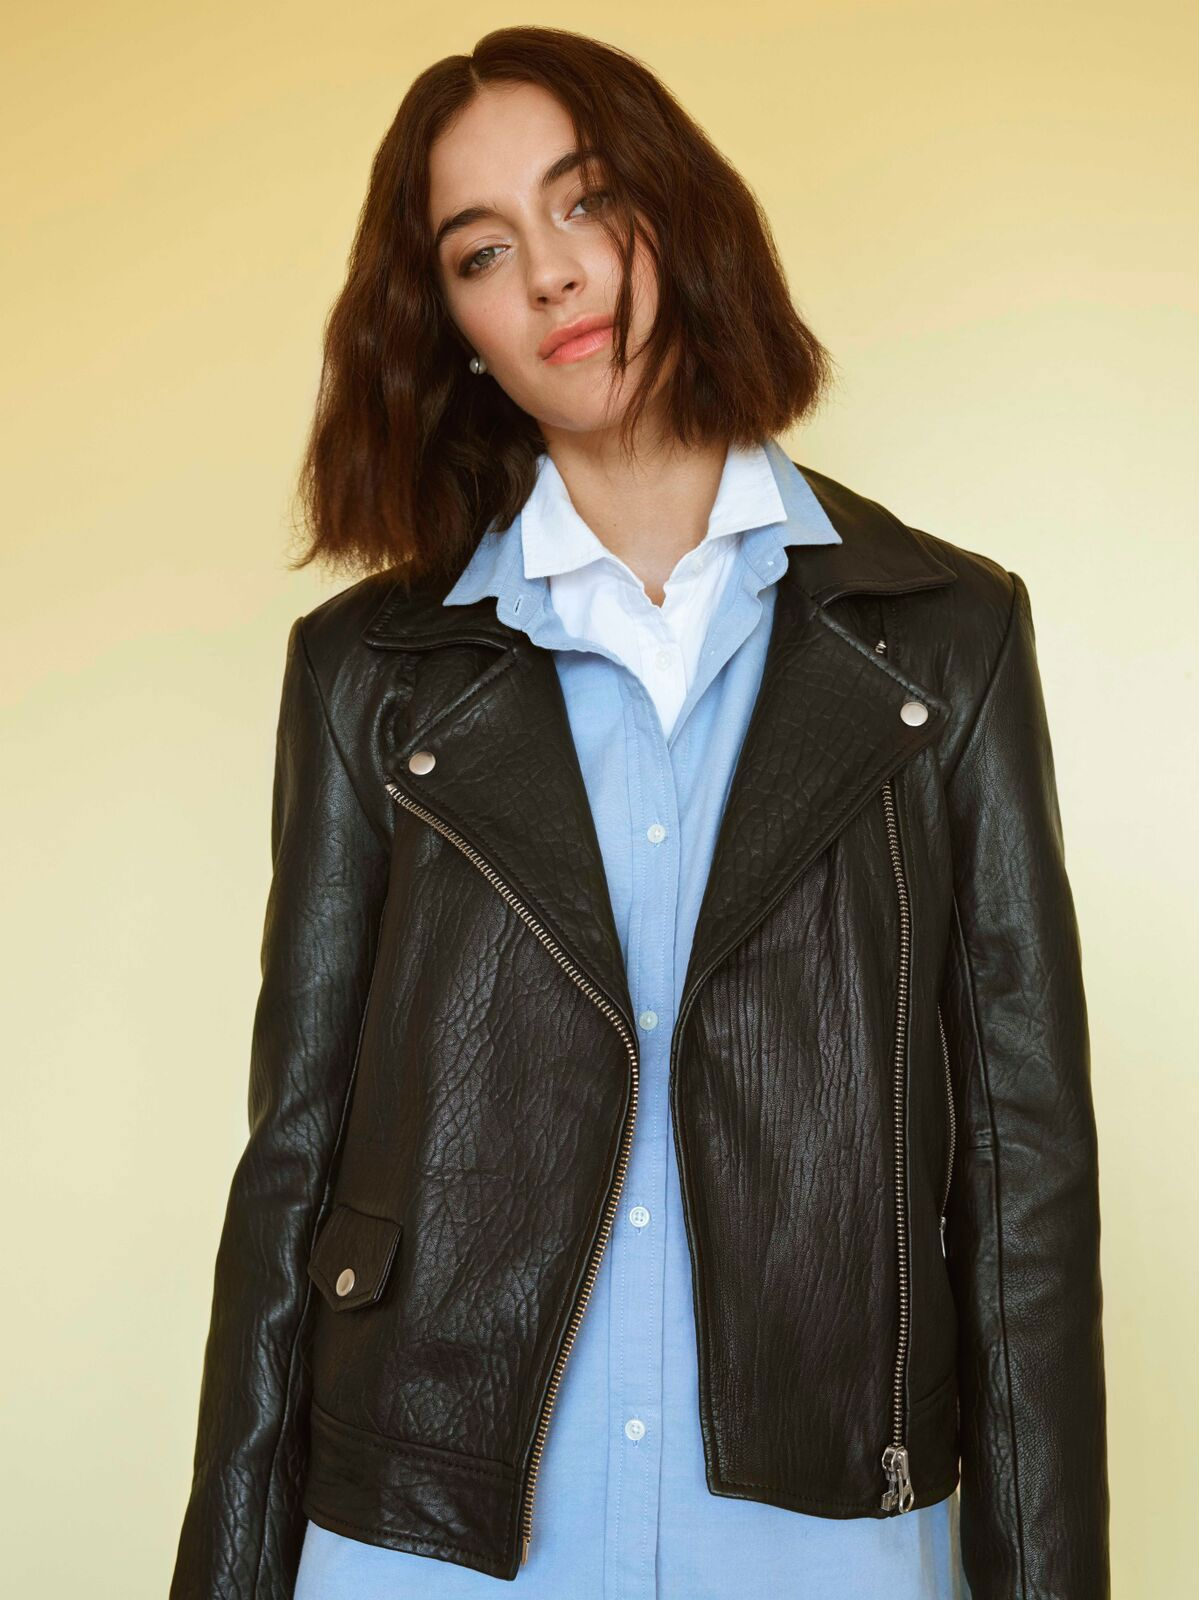 Frank oak expands into women 39 s clothing for fall for Frank and oak shirt